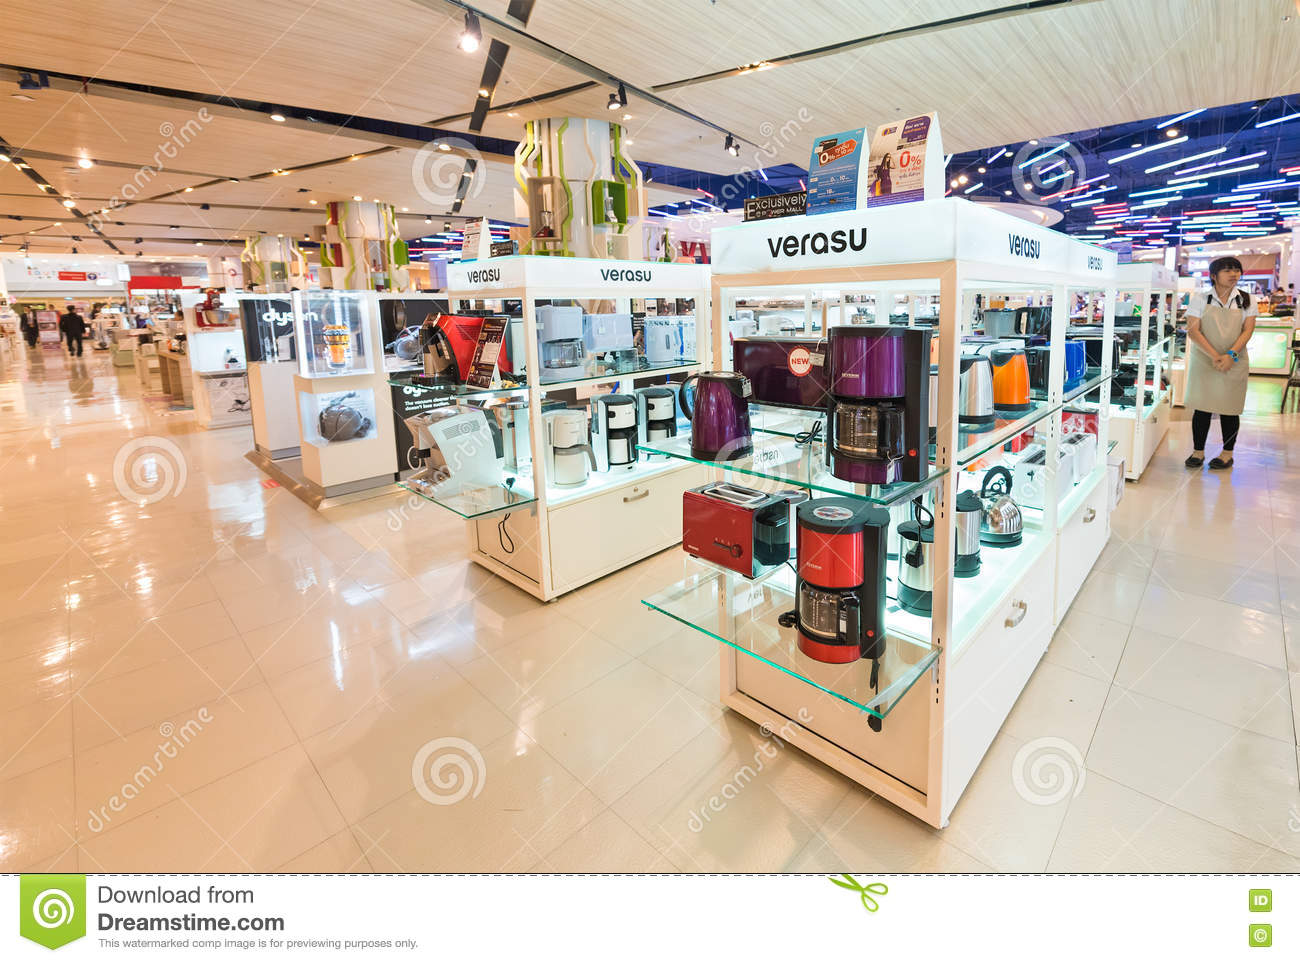 kitchen appliance store copper accessories appliances at siam paragon mall bangkok editorial photo march 17 2016 various a household in it is one of the biggest shopping centres asia